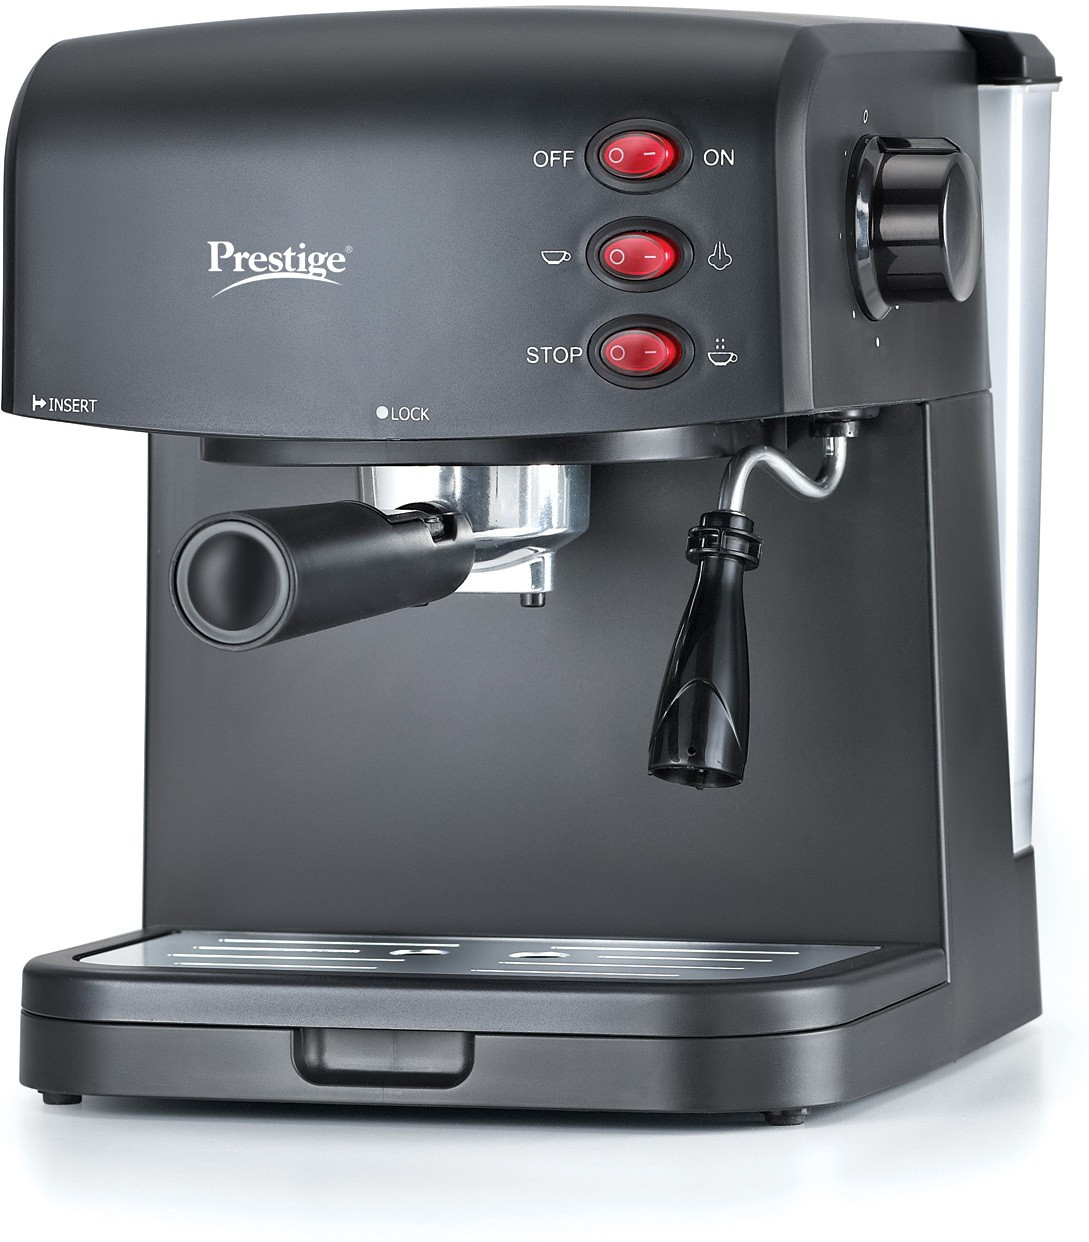 Filter Coffee Maker Flipkart : Prestige 41853 4 cups Coffee Maker Price in India - Buy Prestige 41853 4 cups Coffee Maker ...